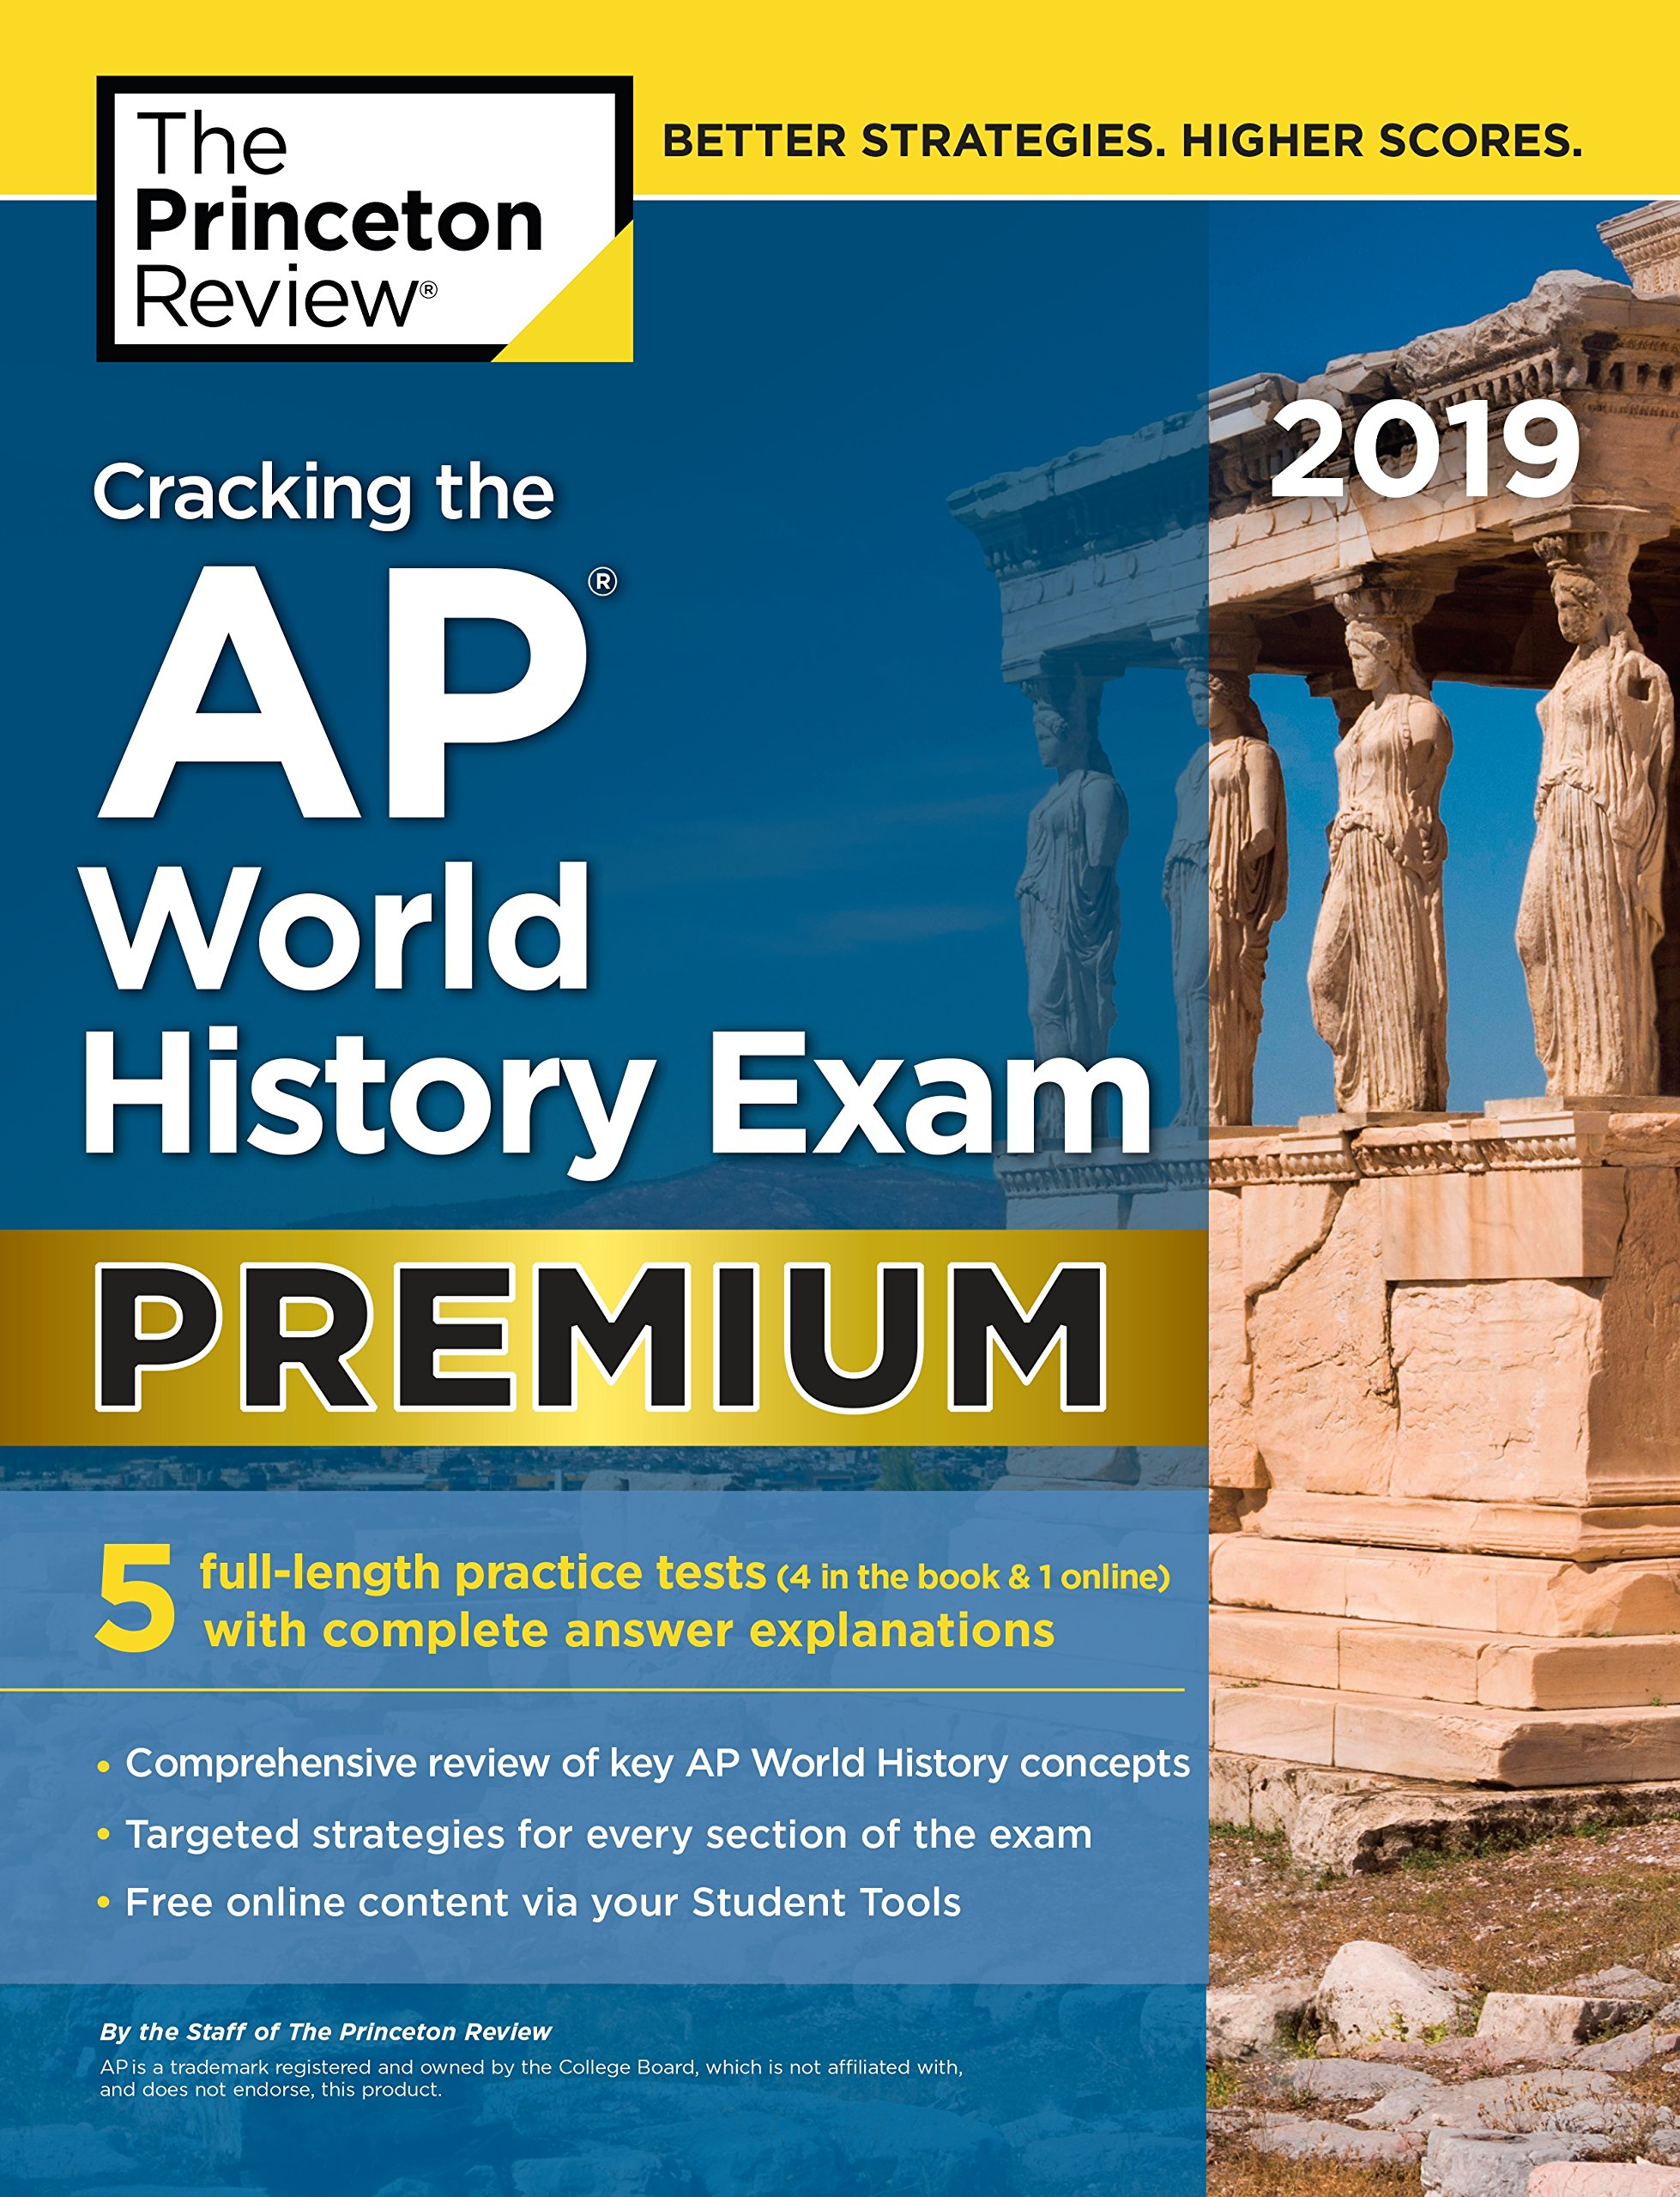 Cracking the AP World History Exam 2019, Premium Edition: 5 Practice Tests + Complete Content Review (College Test Preparation) by Princeton Review (Image #2)